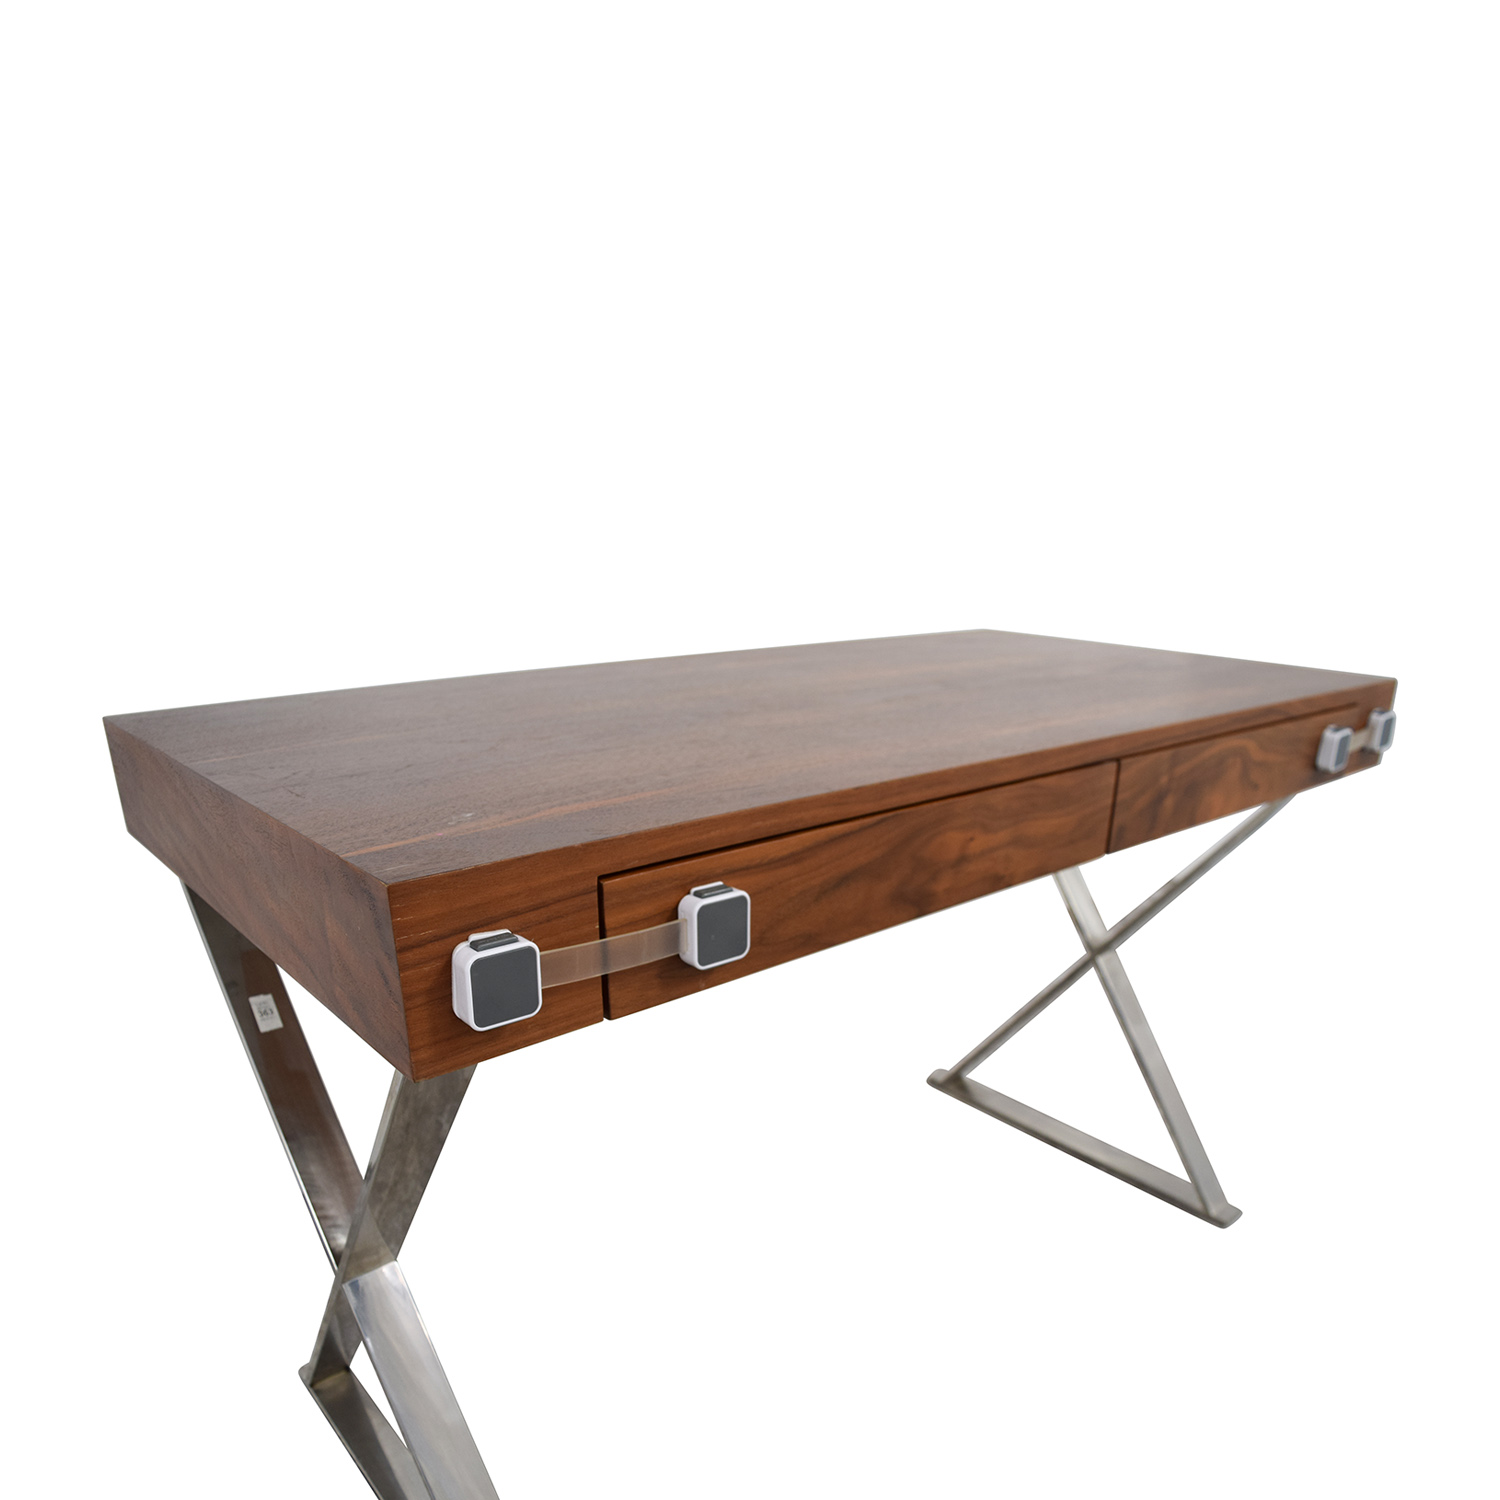 41% OFF Pangea Home Pangea Home Wood and Metal X Leg Desk Tables